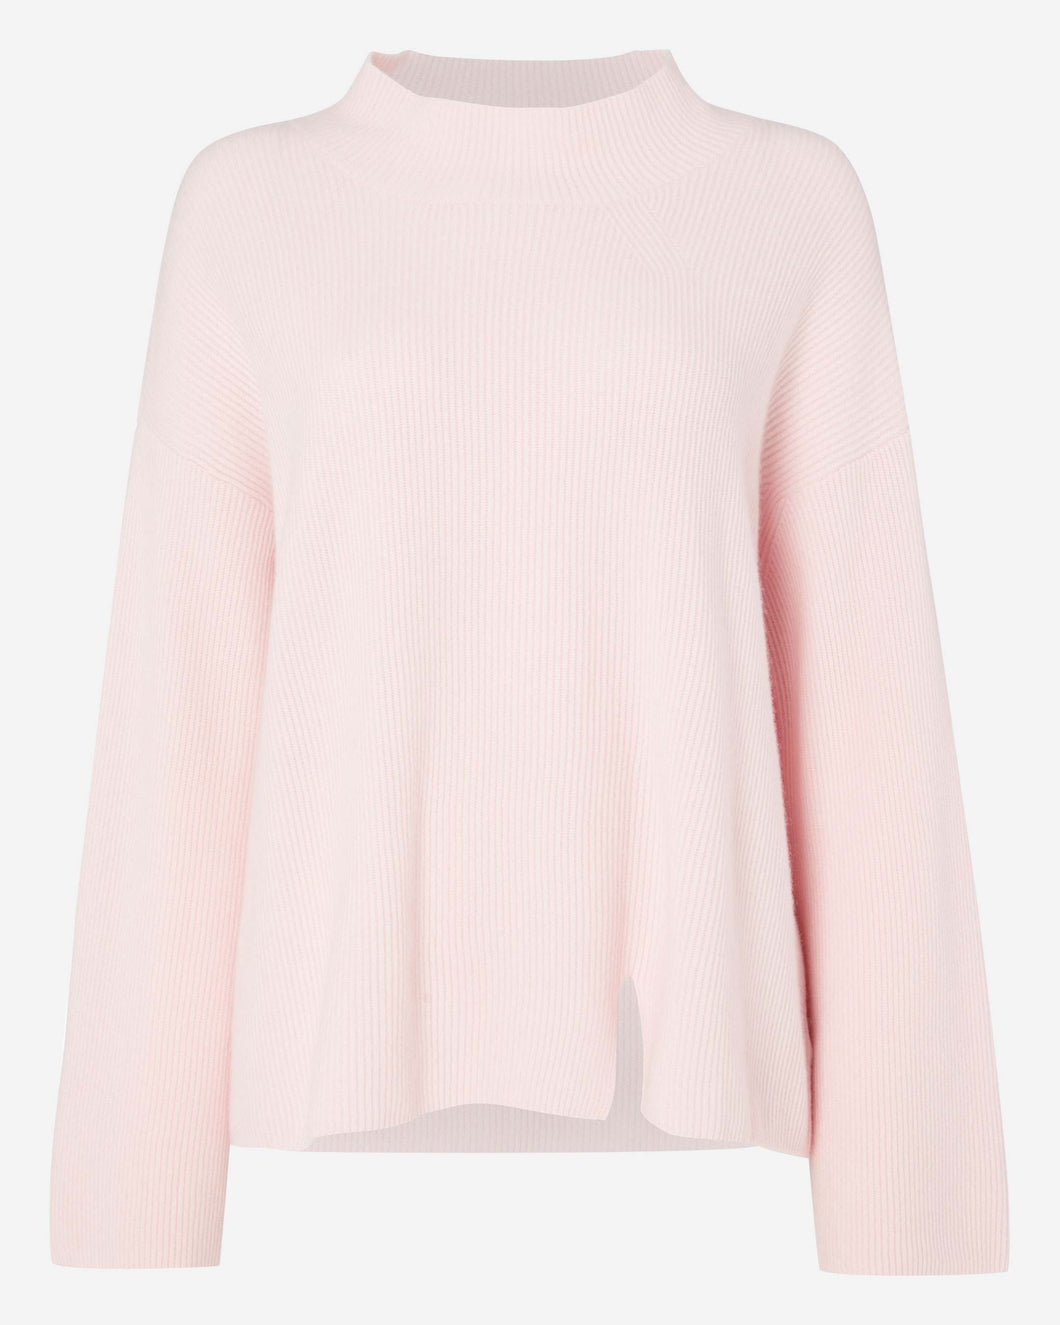 Cardigan Stitch Funnel Neck Cashmere Sweater Pale Pink